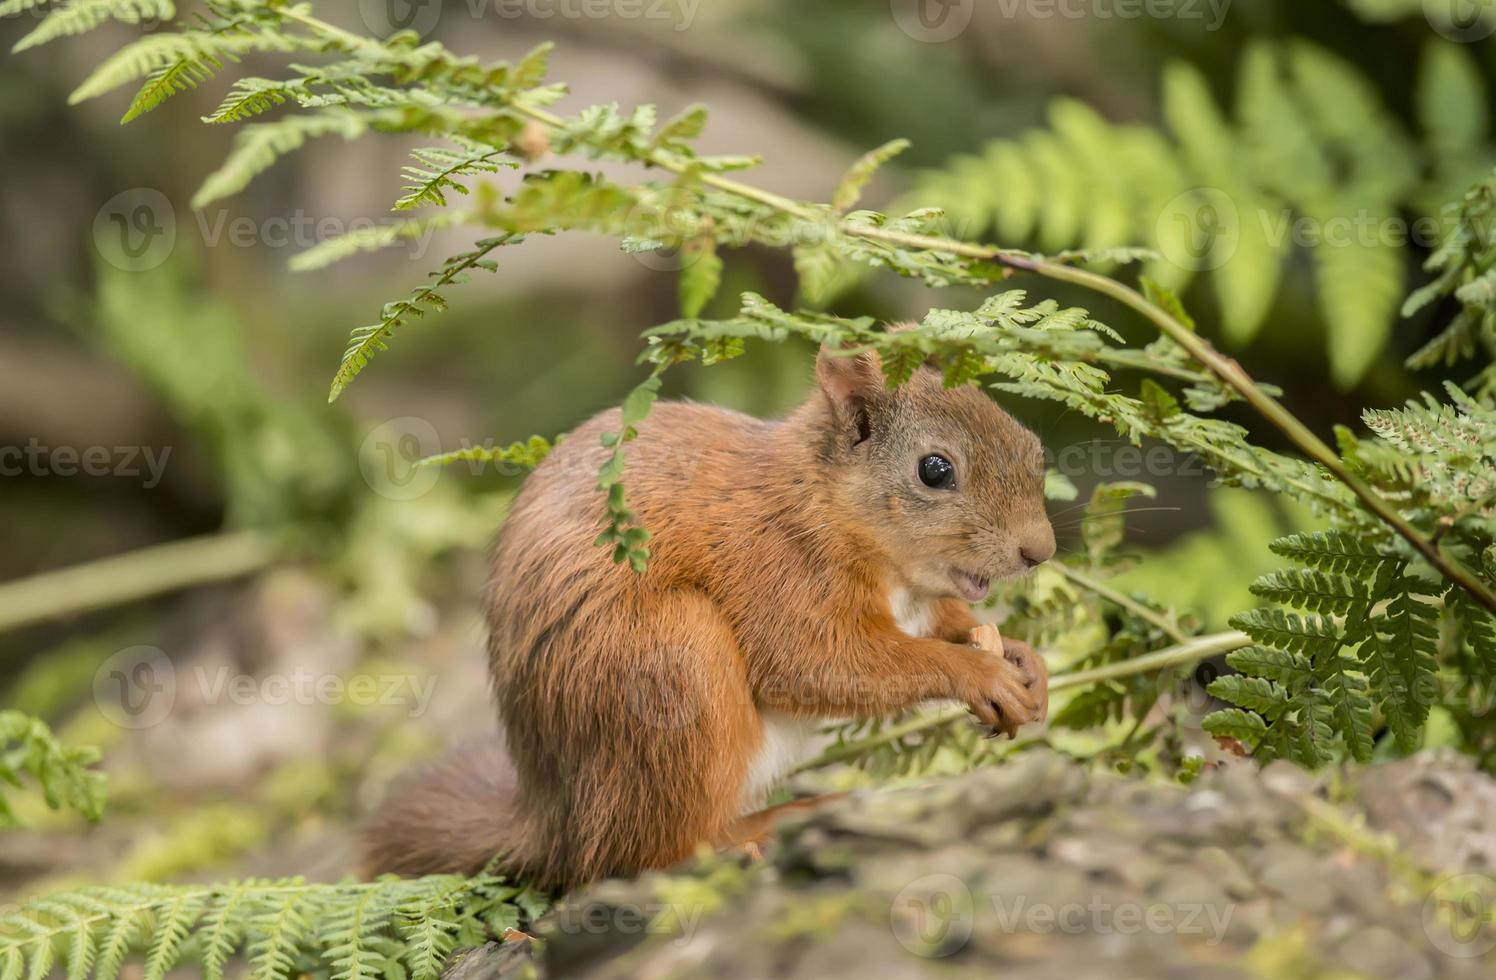 Red squirrel on a tree trunk eating a nut photo